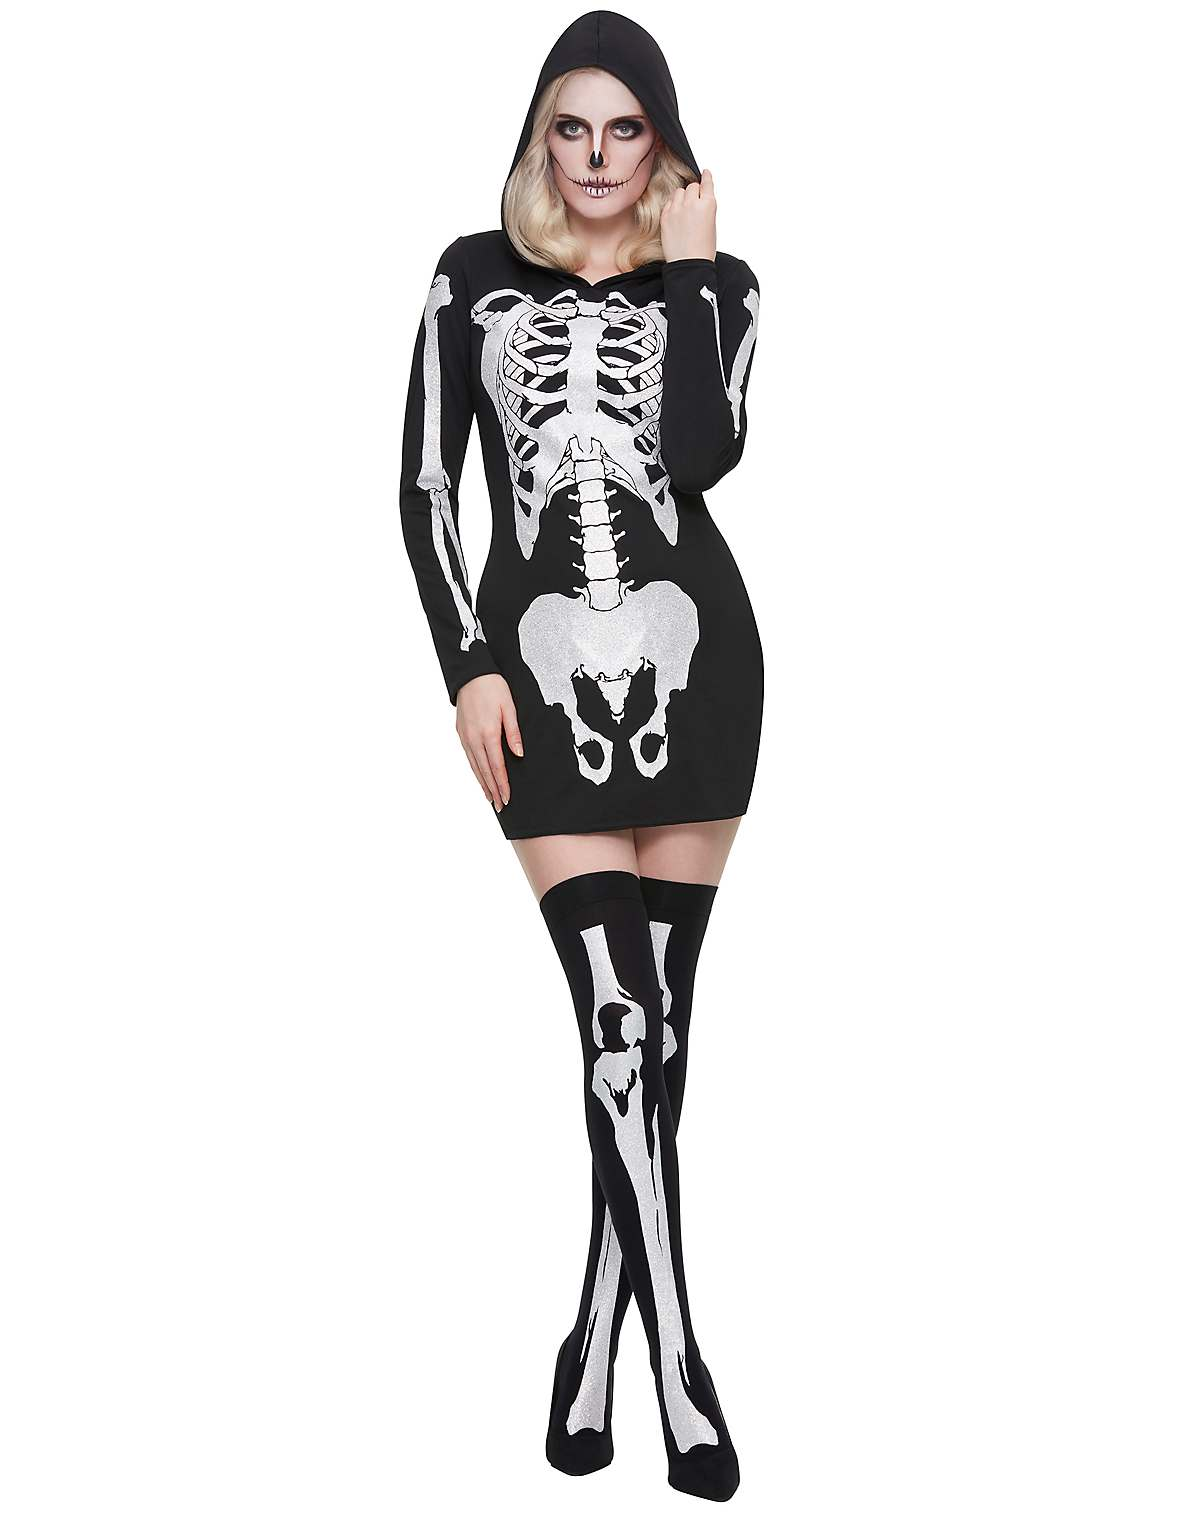 Hooded holographic skeleton costume